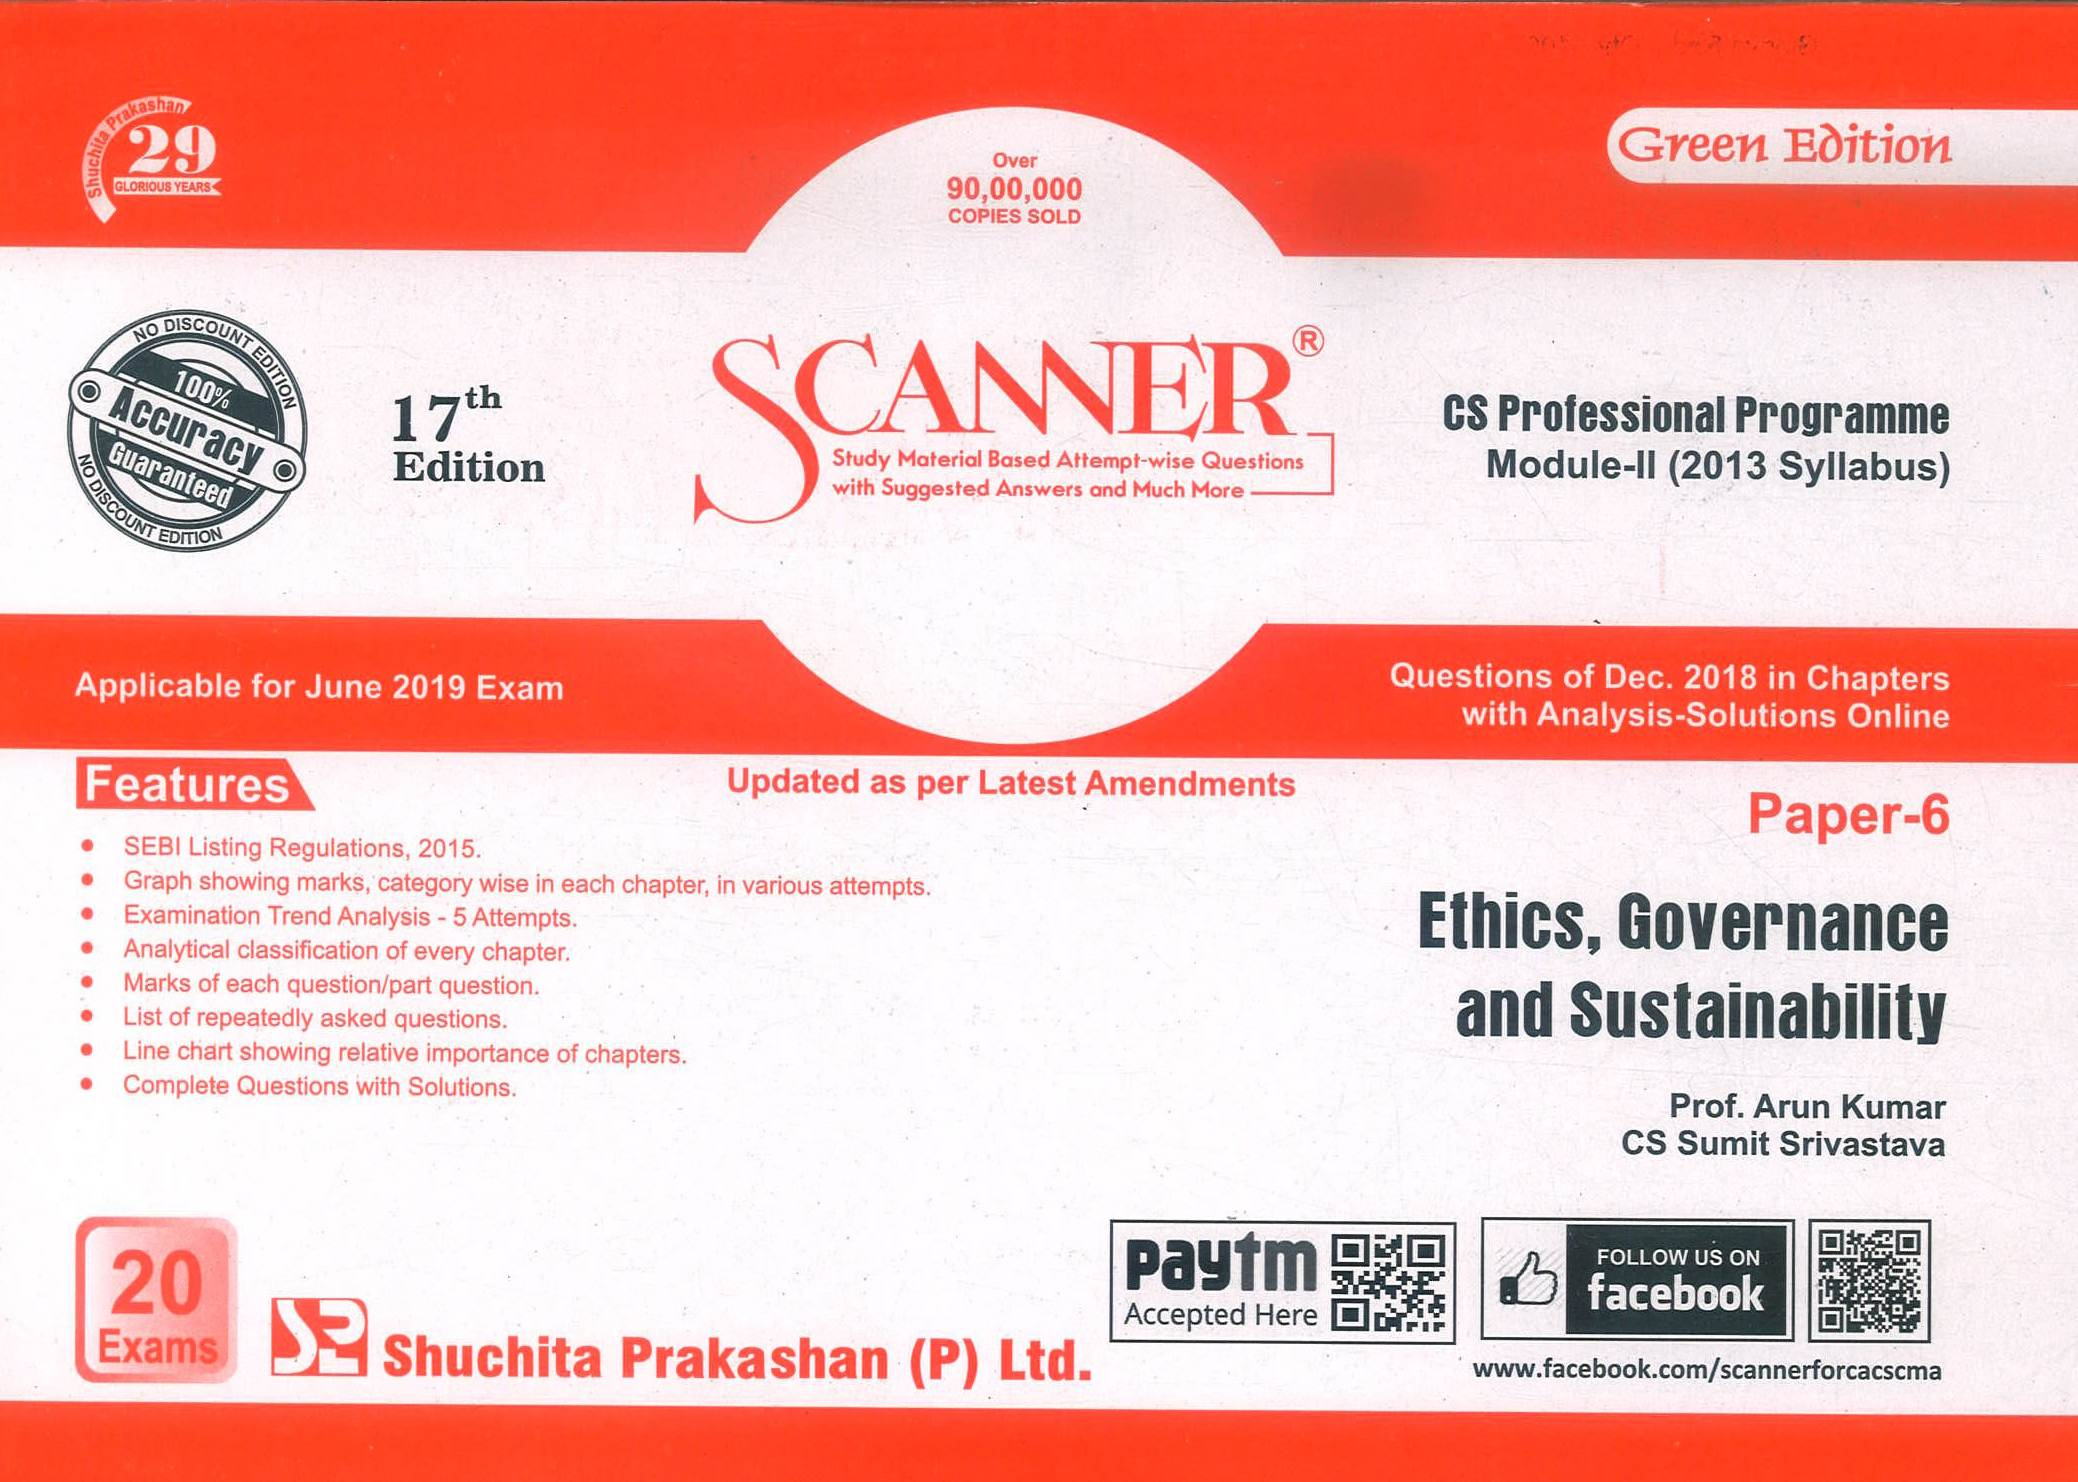 Shuchita Ethics, Governance and Sustainability Solved Scanner for June 2019 Exam for CS Professional Programme Module-II (New Syllabus) Paper 6 Green Edition by Prof. Arun Kumar, CS Sumit Srivastava (Shuchita Prakashan) Edition 17th 2019